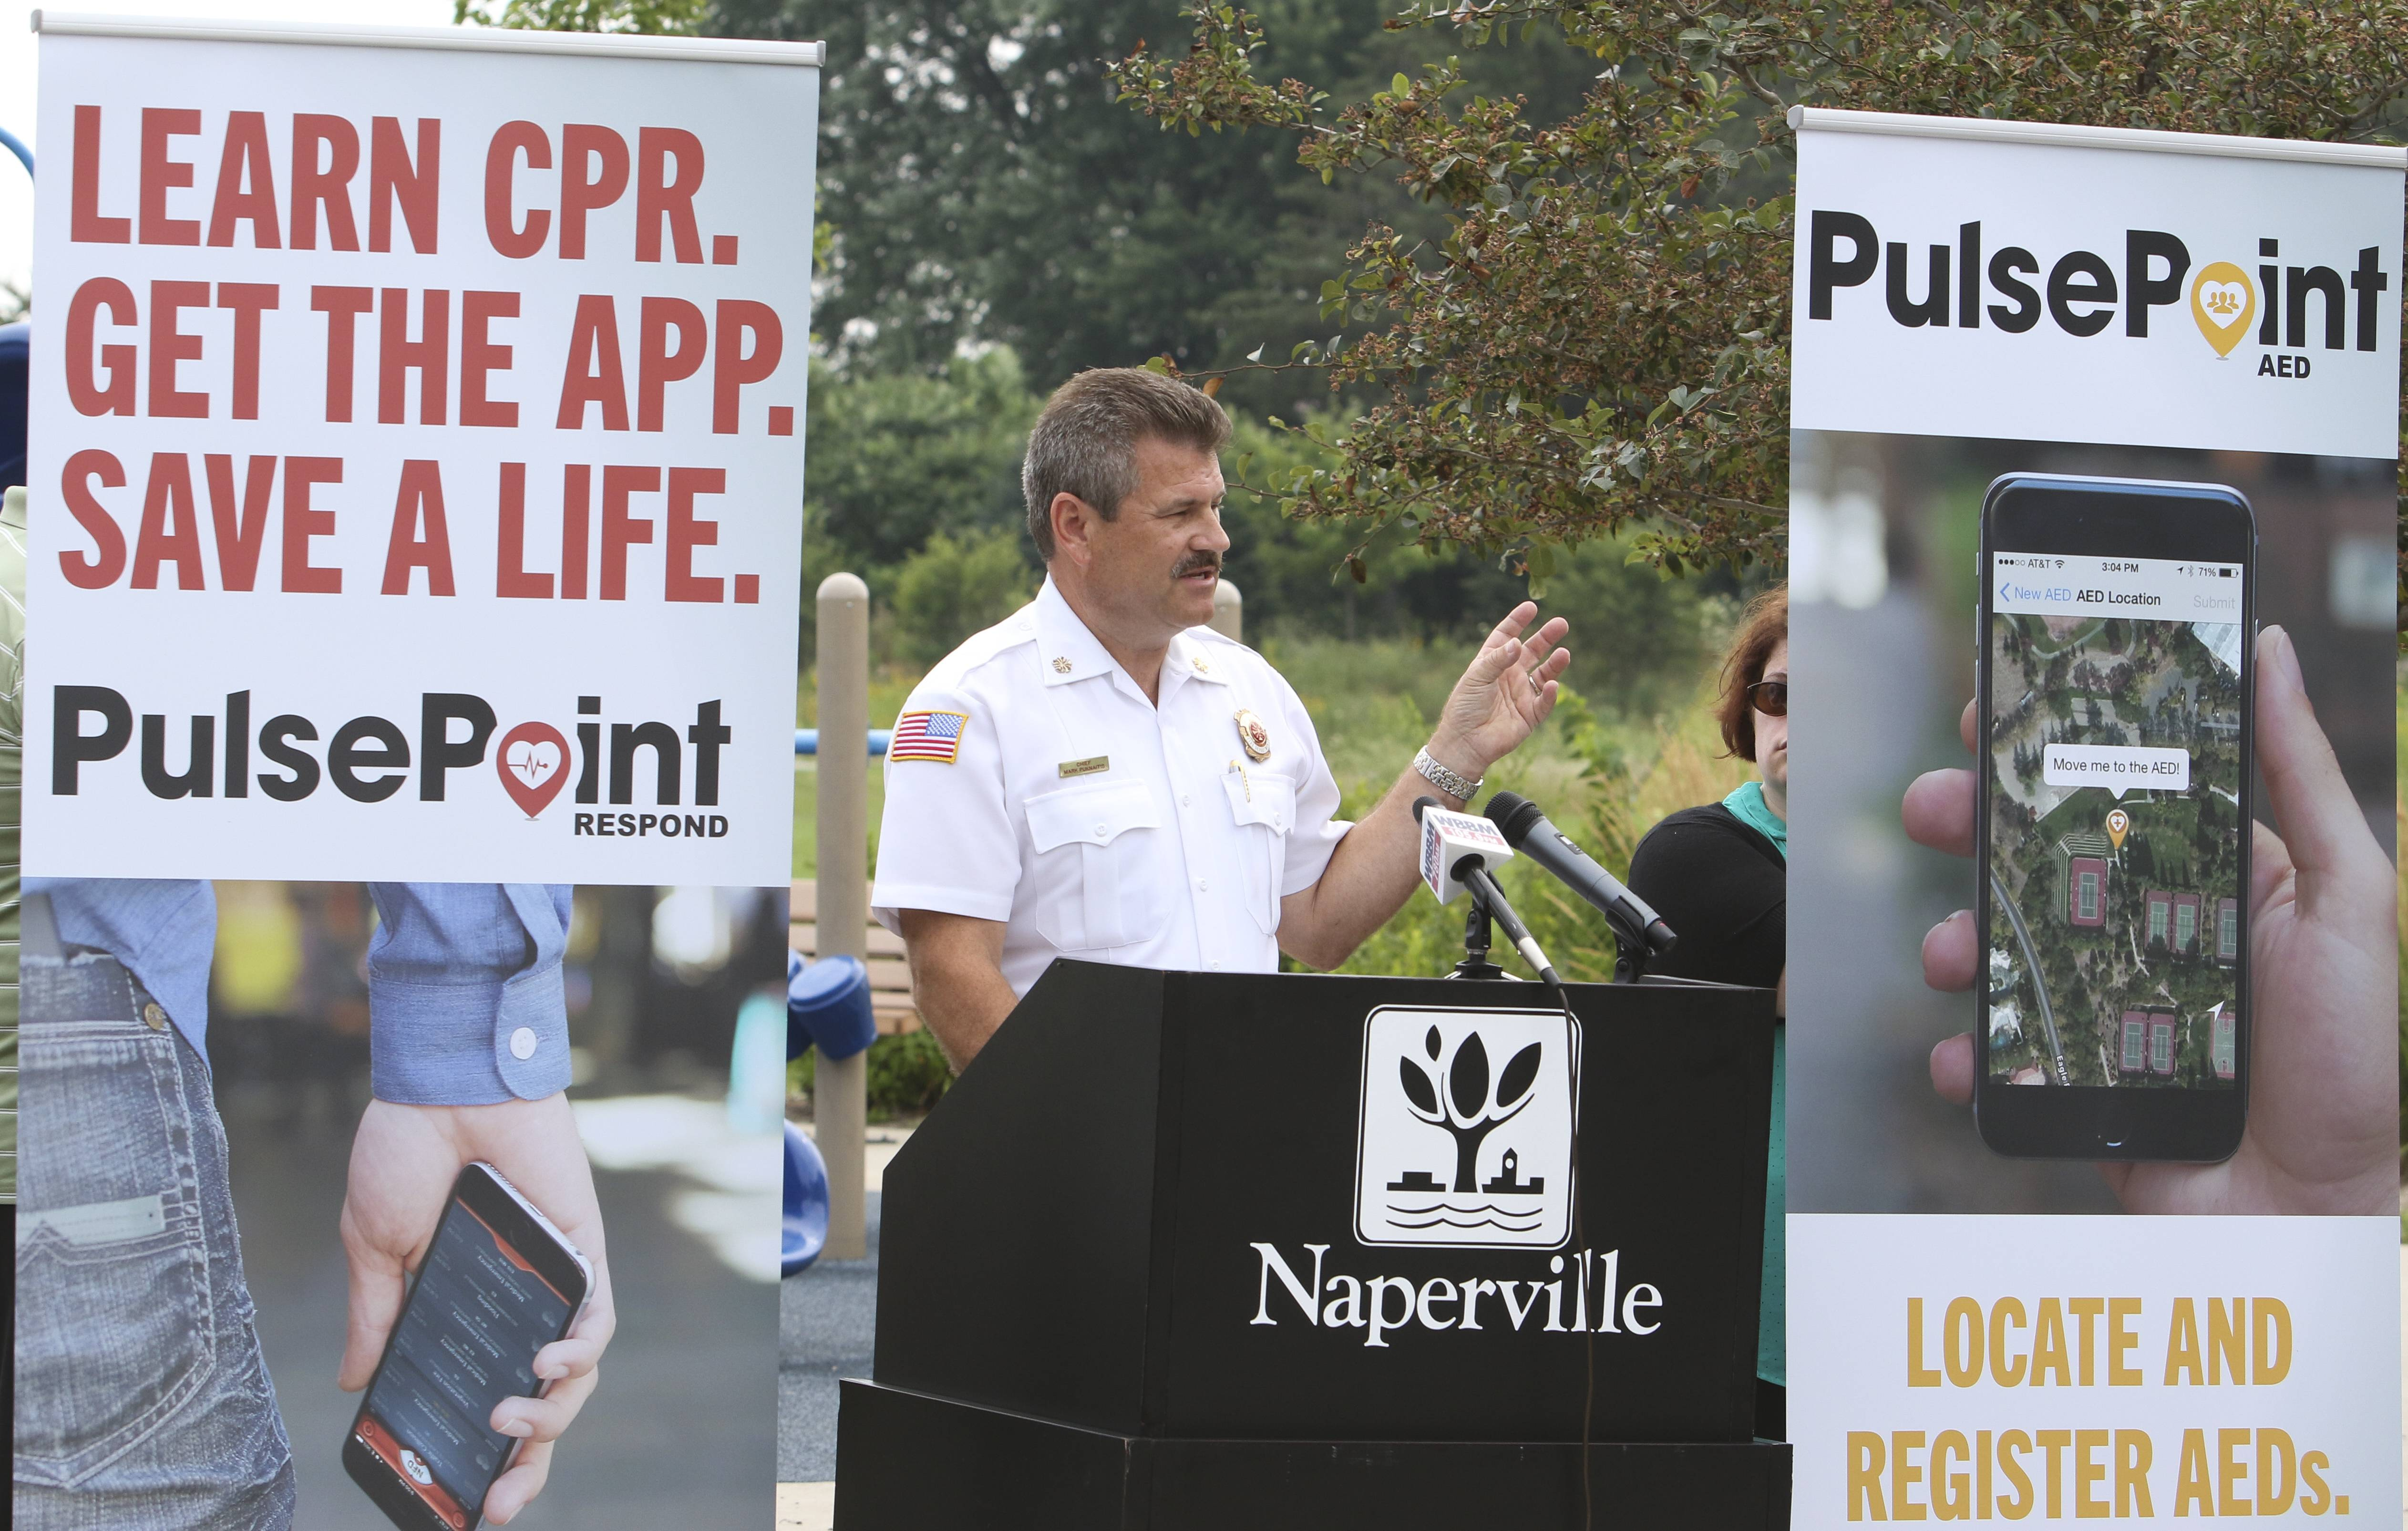 Naperville Fire Chief Mark Puknaitis introduces a new smartphone app that allows registered users to respond to cardiac emergencies that occur near them.